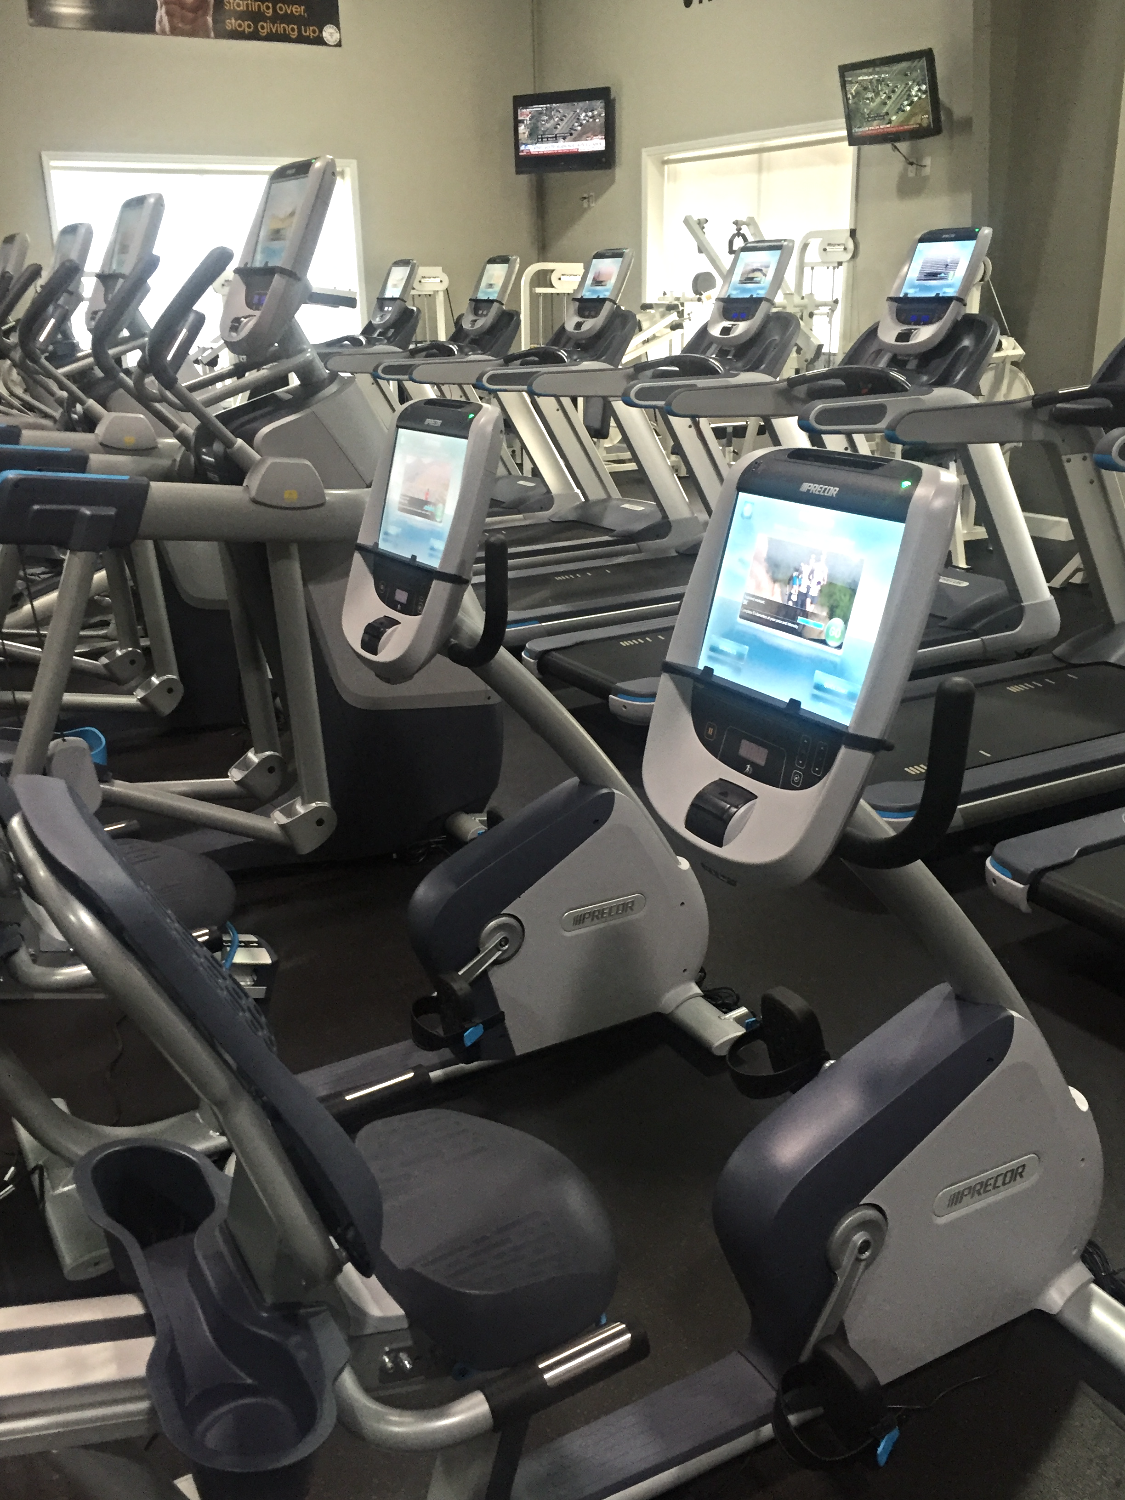 Precor Recumbent Bike w/P80 Consoles